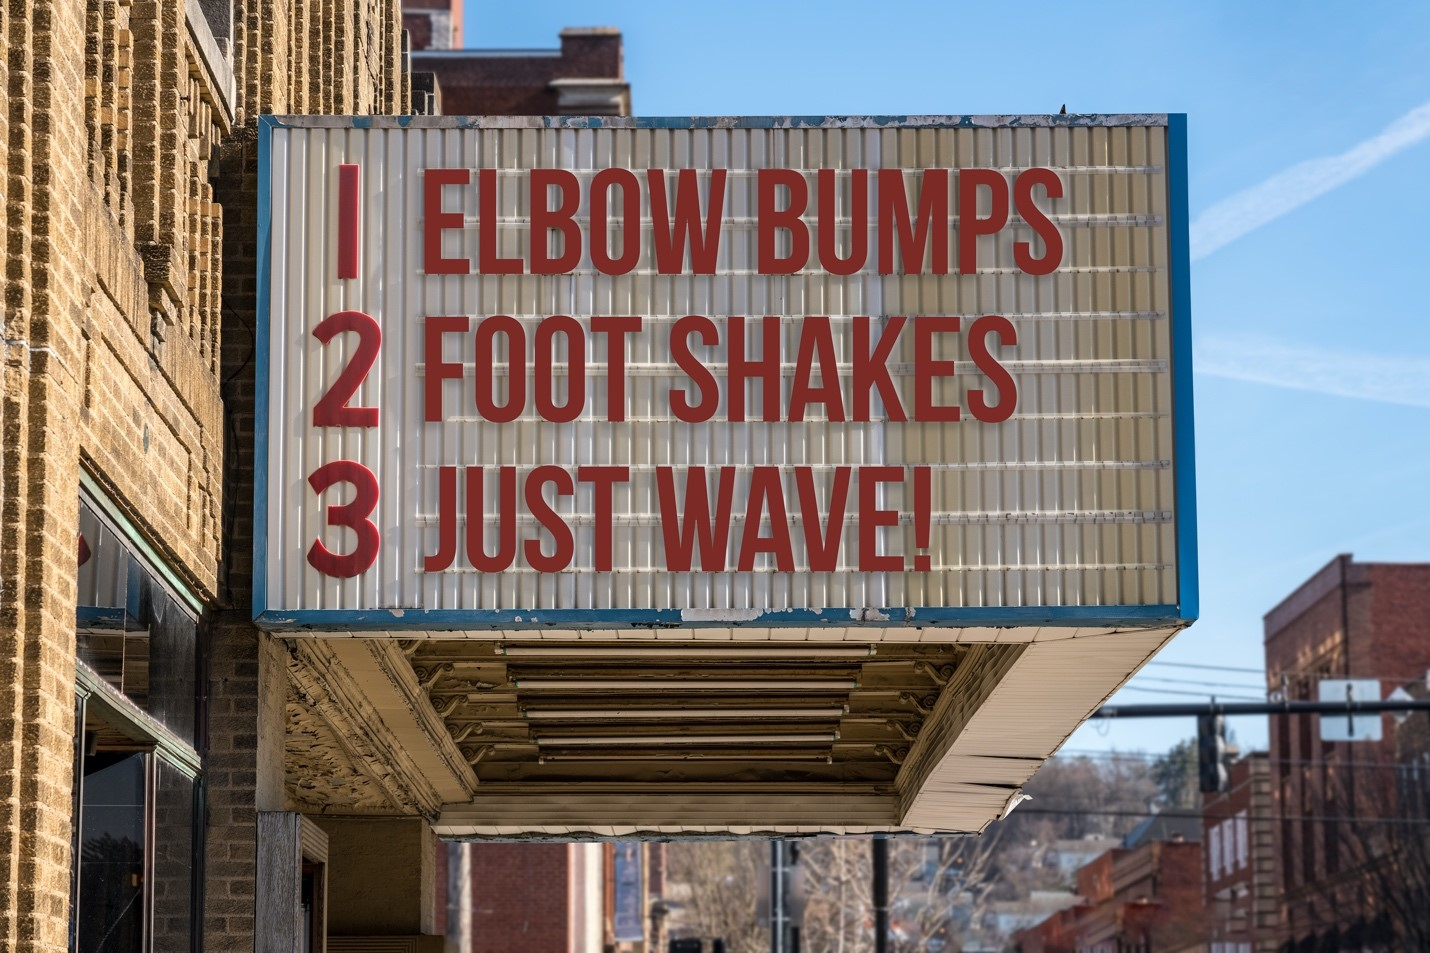 1. Elbow Bumps 2. Foot Shakes 3. Just Wave!